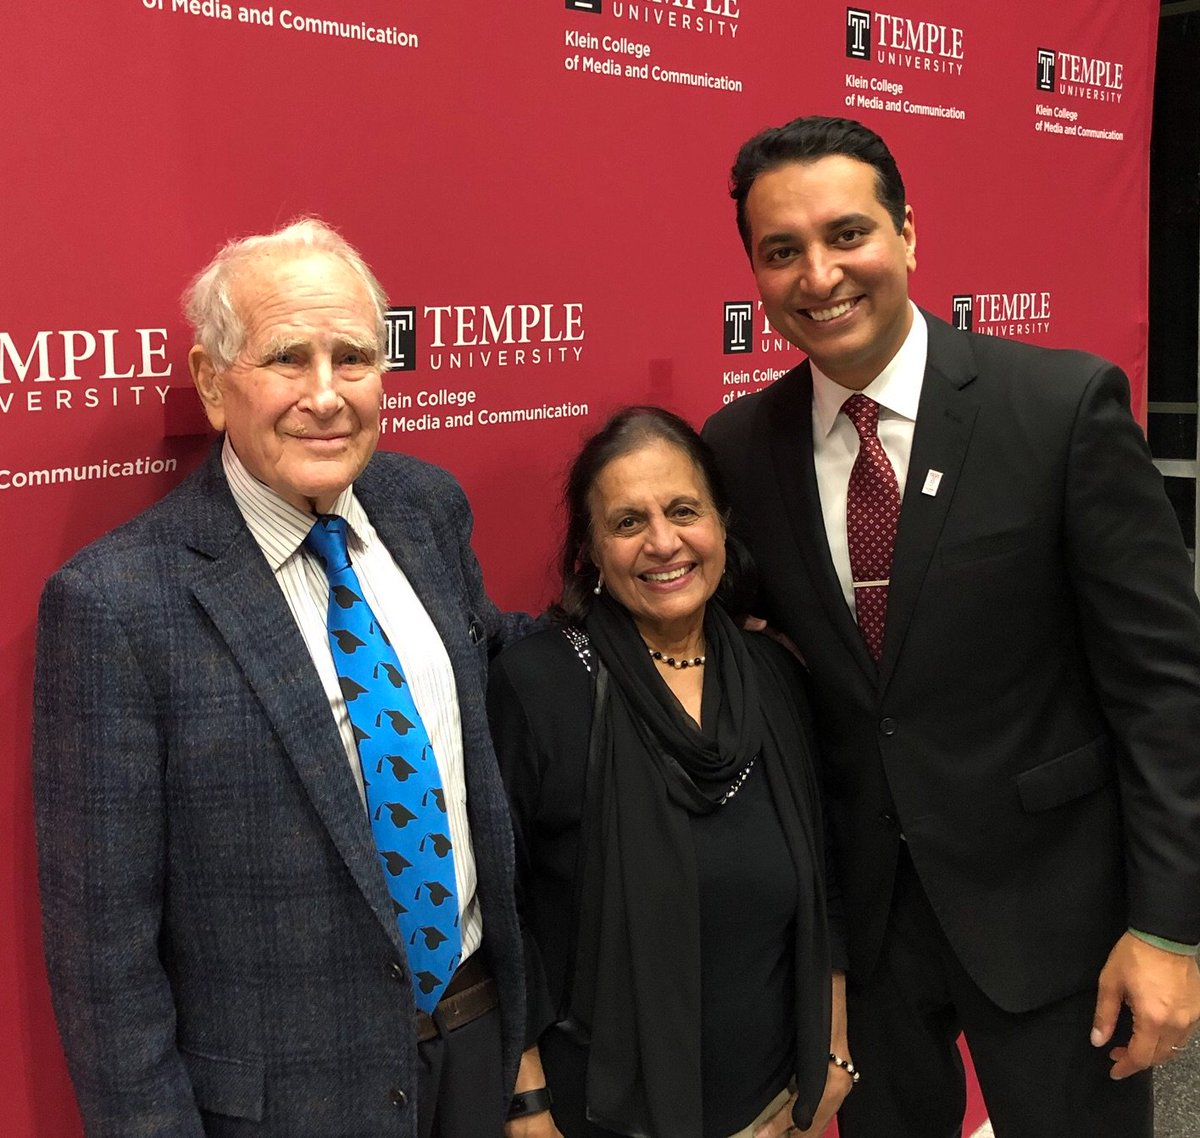 What a loss for all of us @TempleUniv. Lew Klein was a great role model for Owls everywhere. My mom and I spent time w him and his wife Janet in December @TUKleincollege graduation. He was sharp. He was kind. He was Lew. His impact will be felt for generations. RIP Lew.